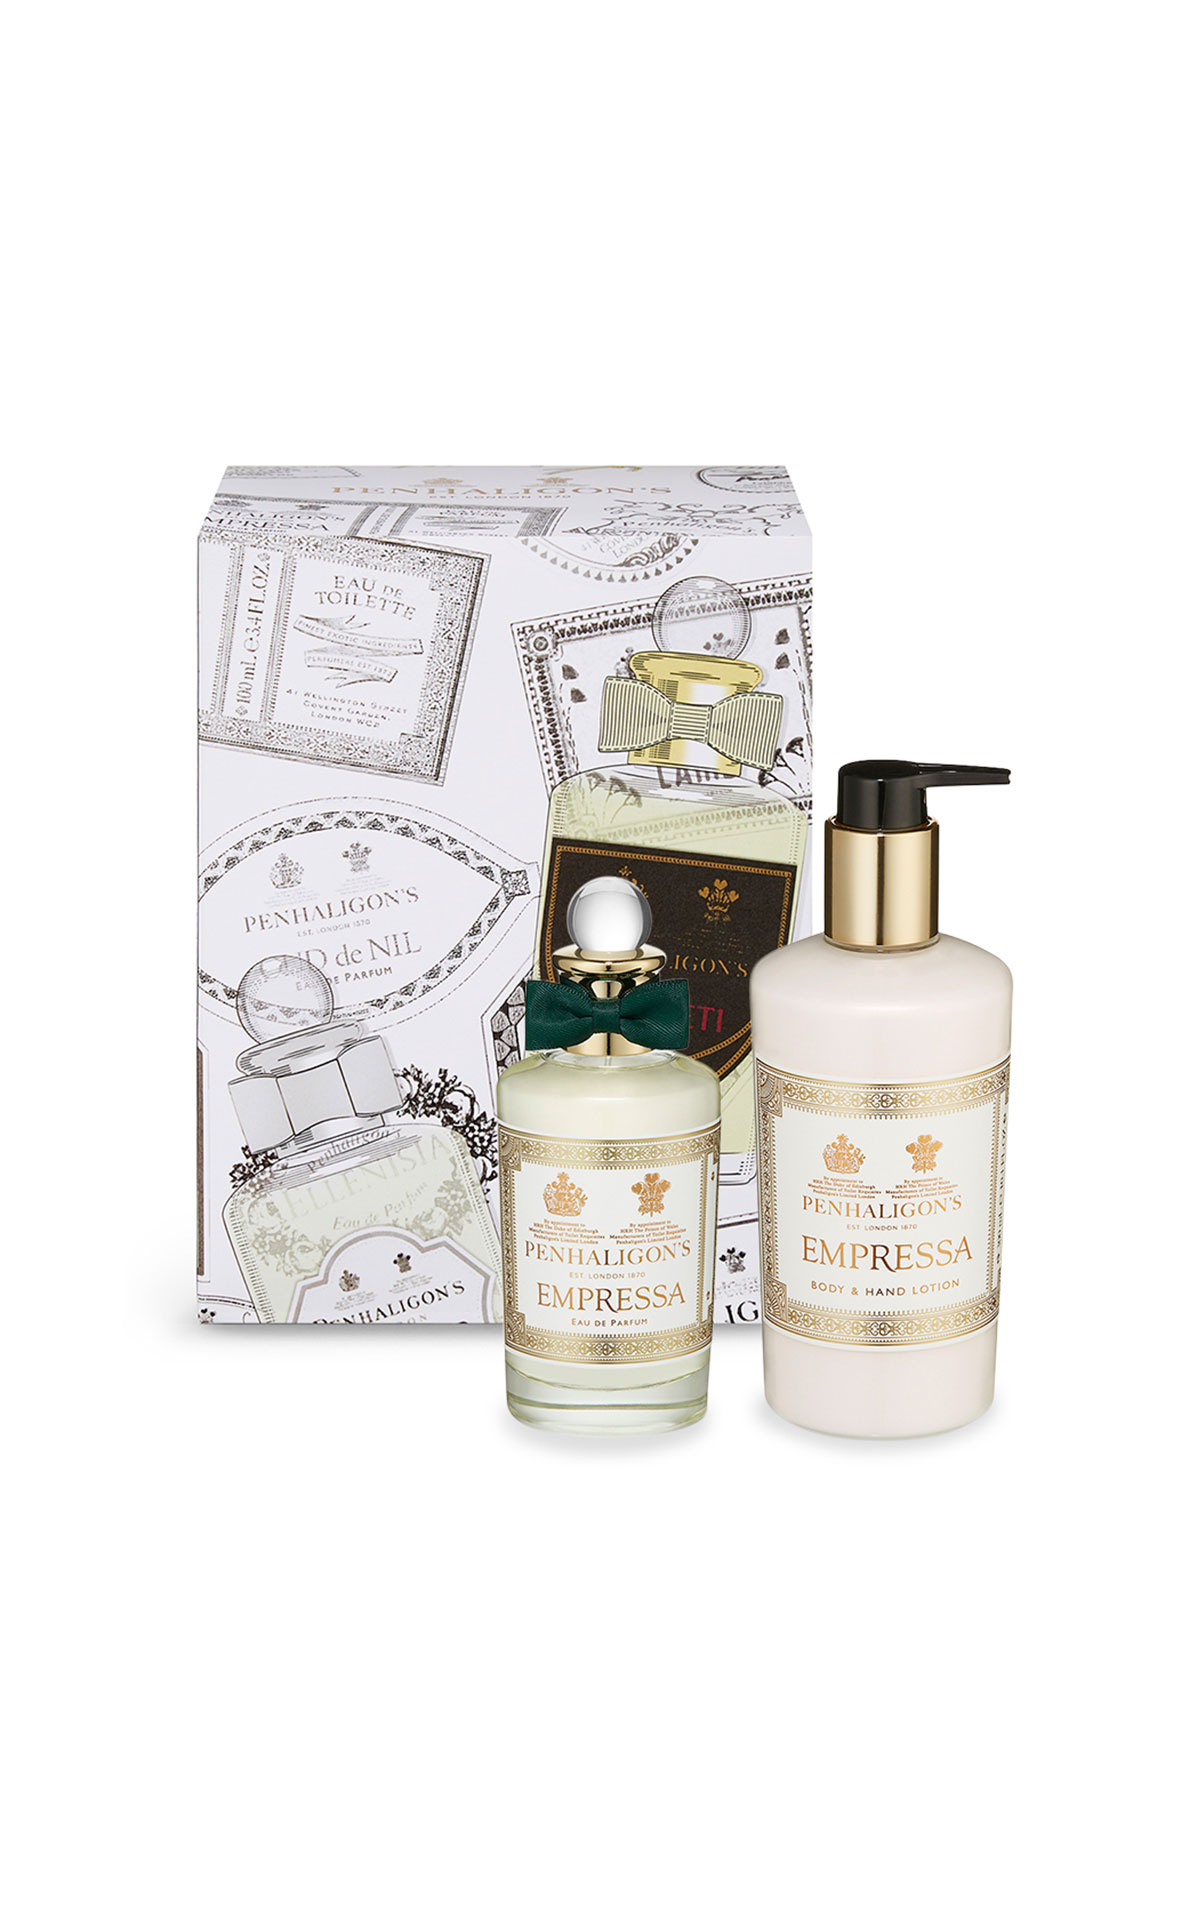 Penhaligon's Empressa body & hand lotion from Bicester Village